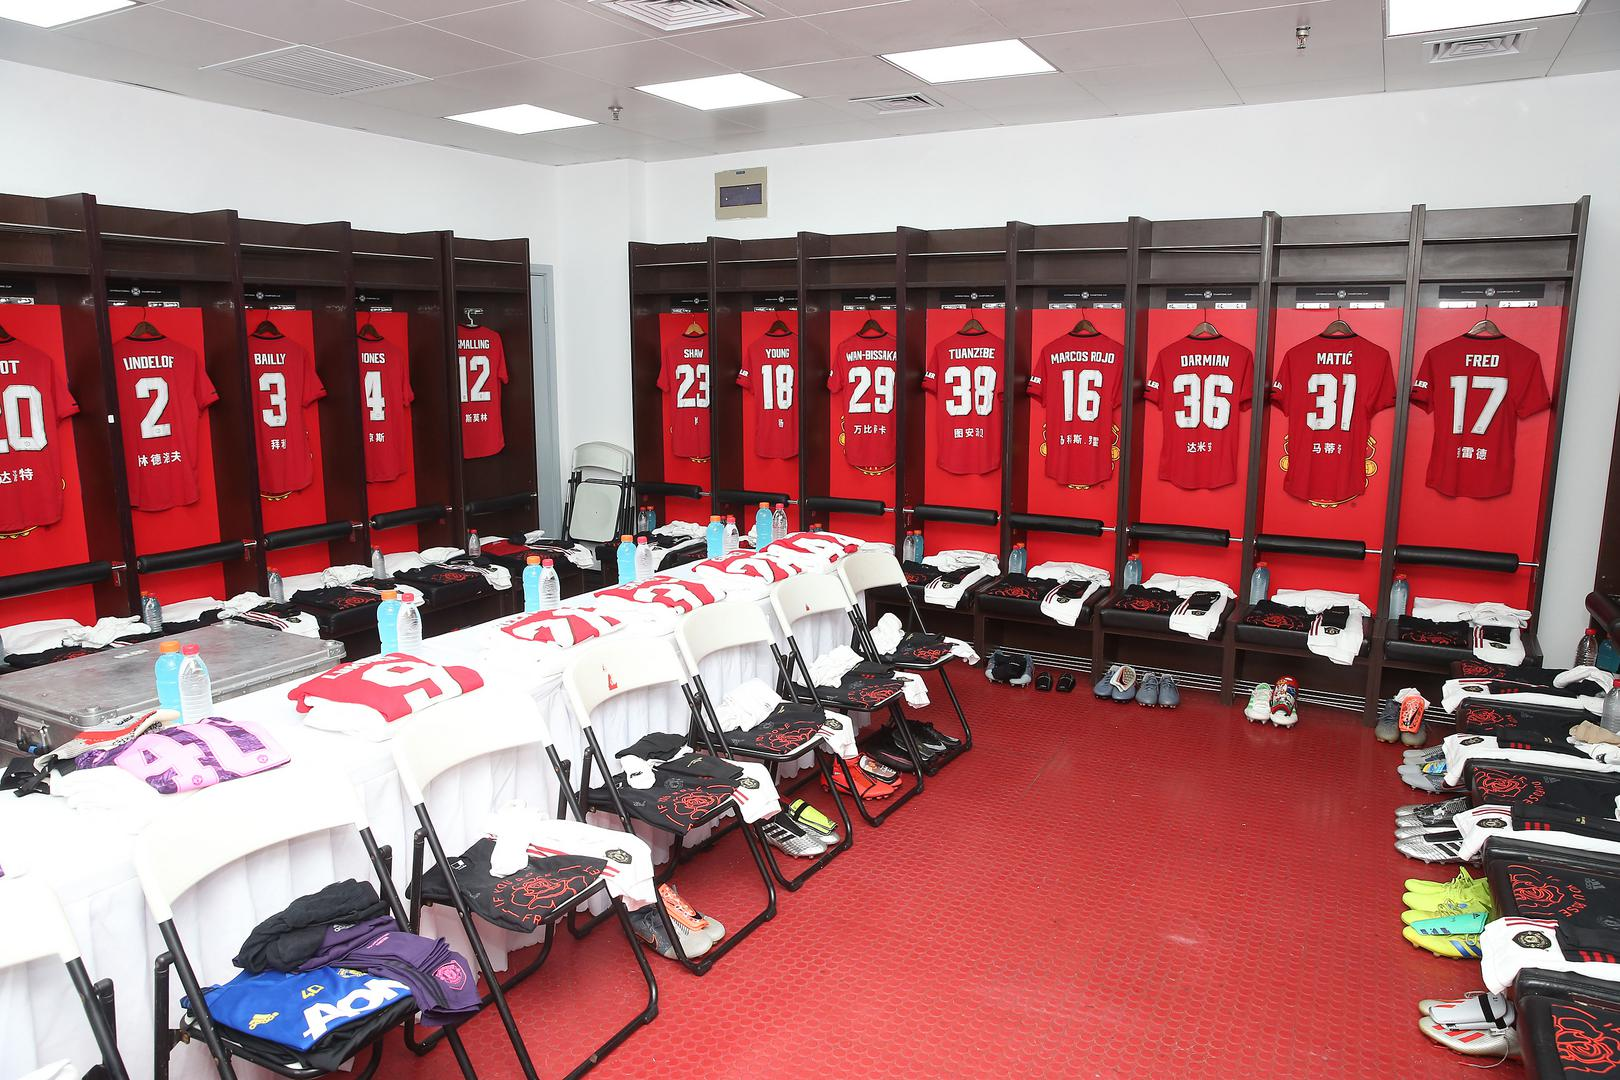 Man United Shirts In Dressing Room At Hongkou Stadium Ahead Of Spurs Clash Manchester United